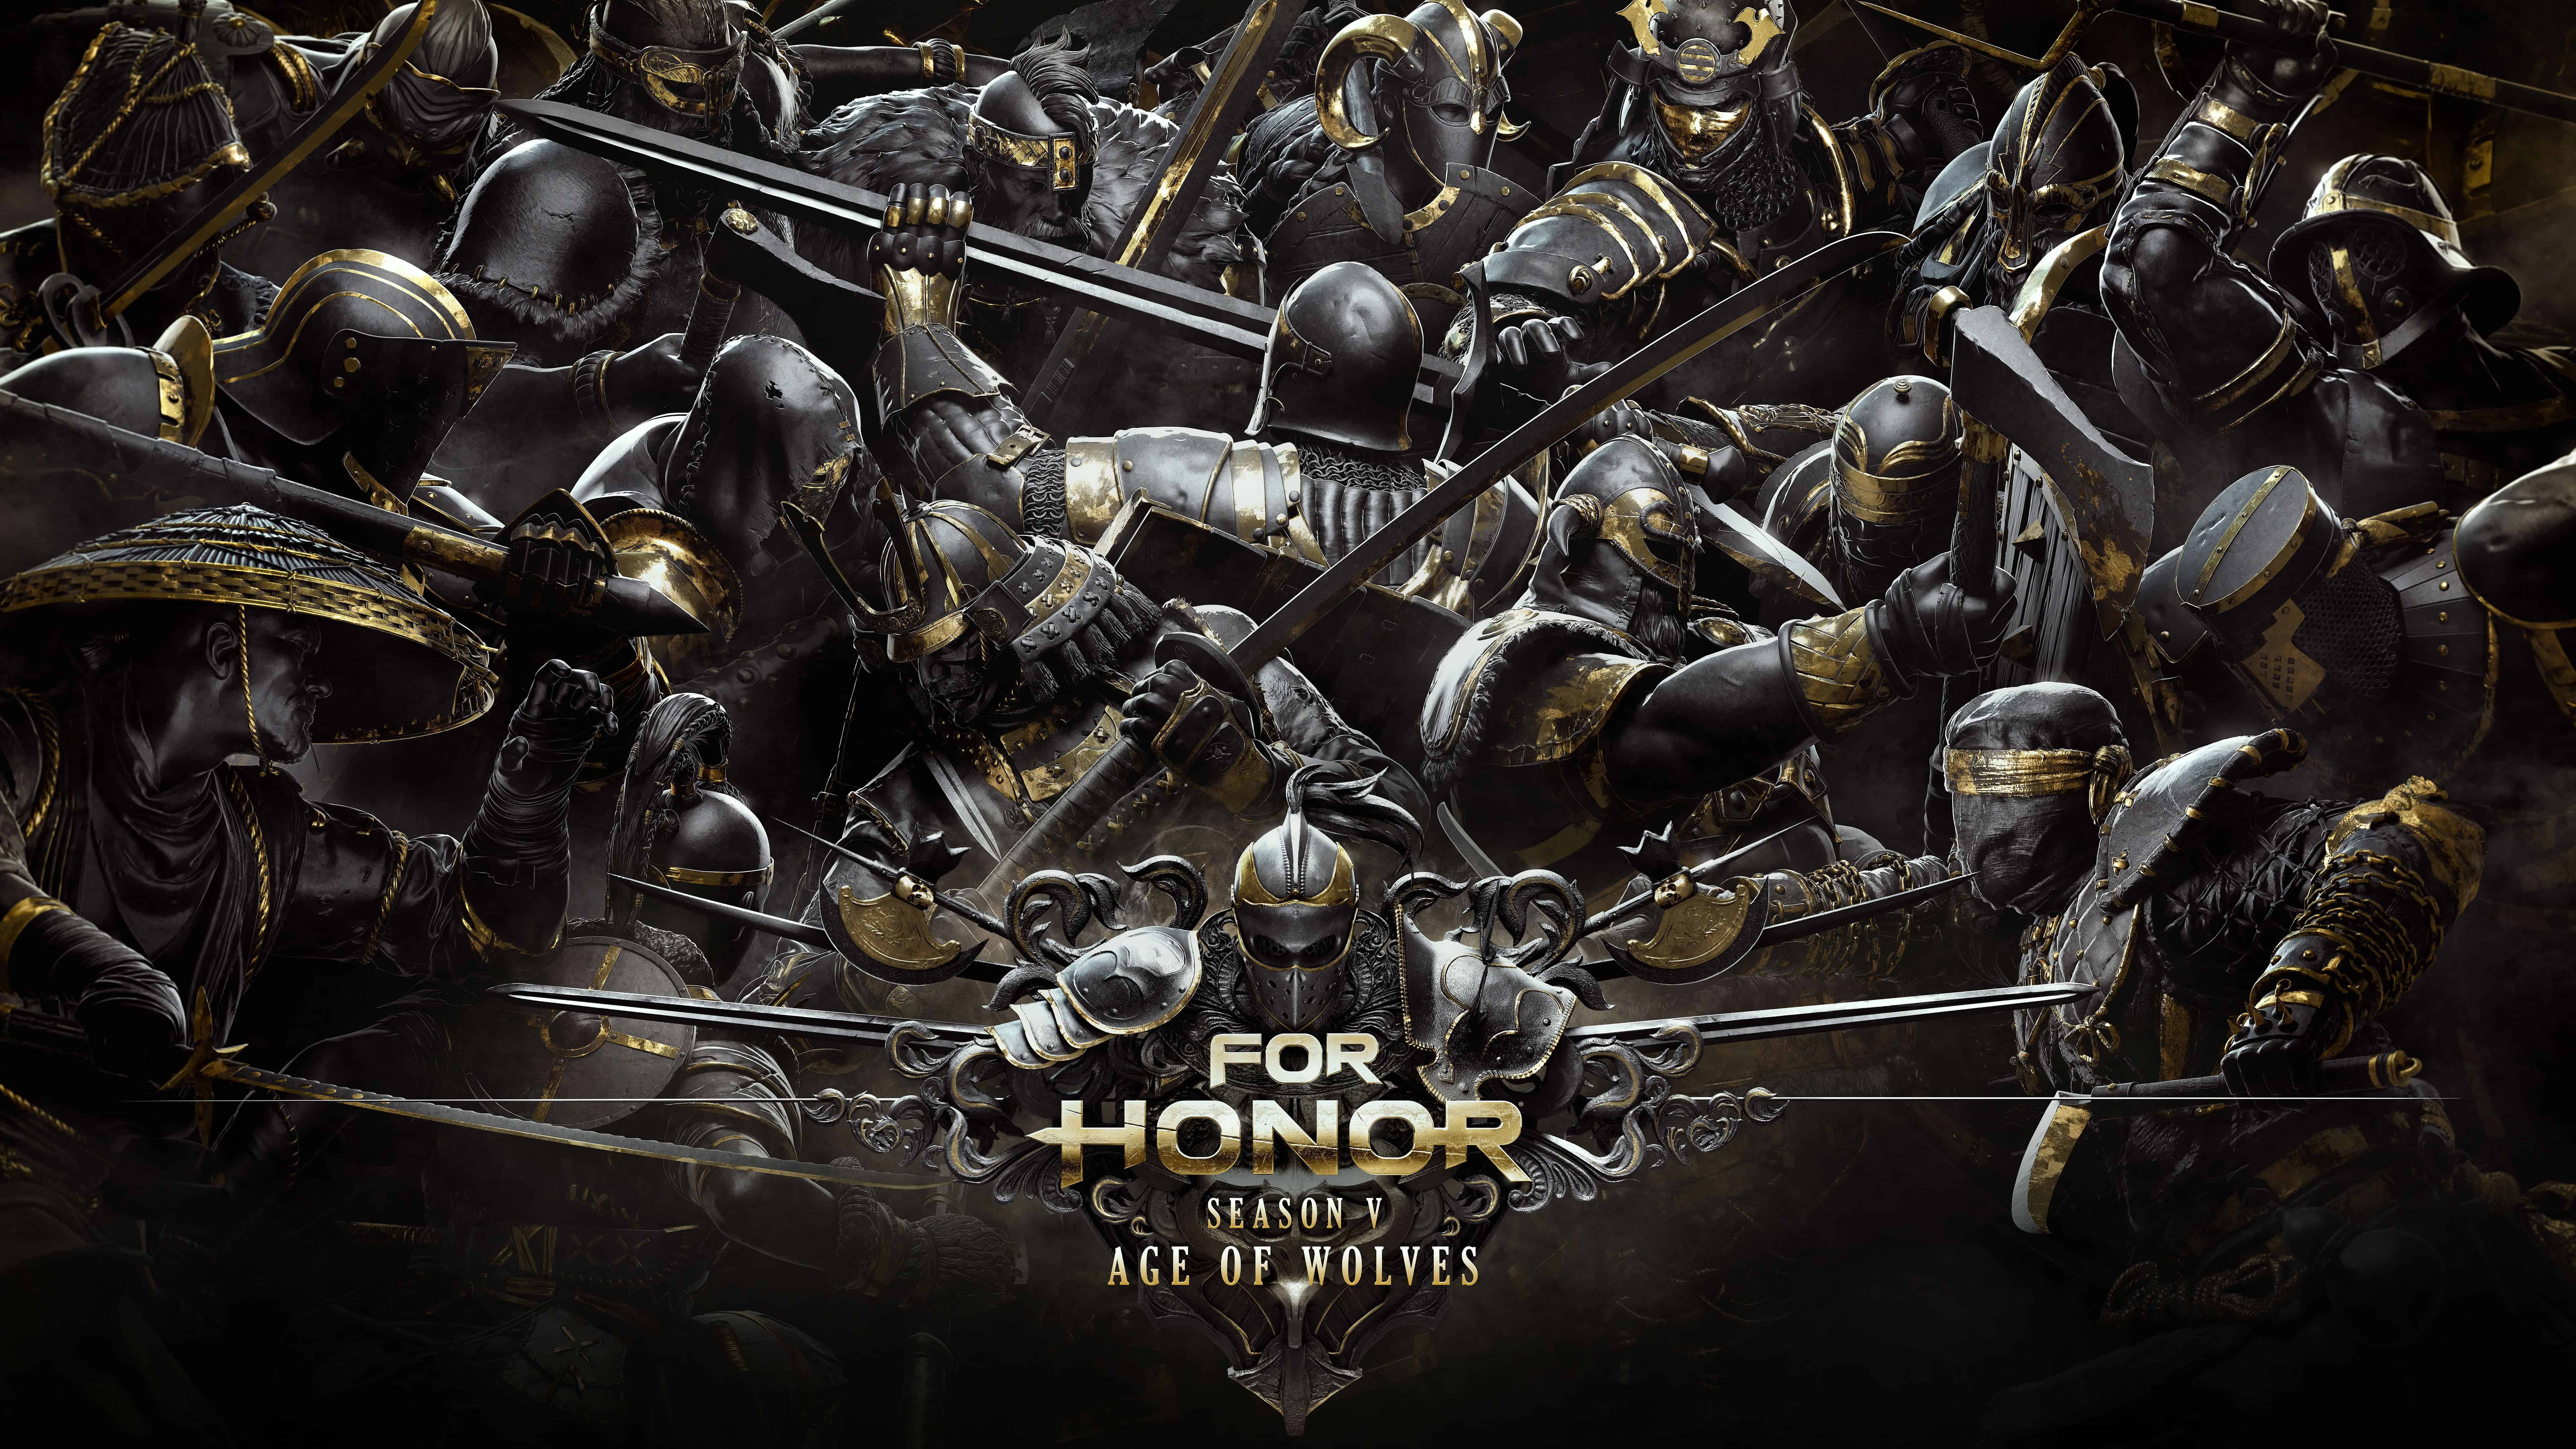 for honor season v age of wolves uhd 8k wallpaper